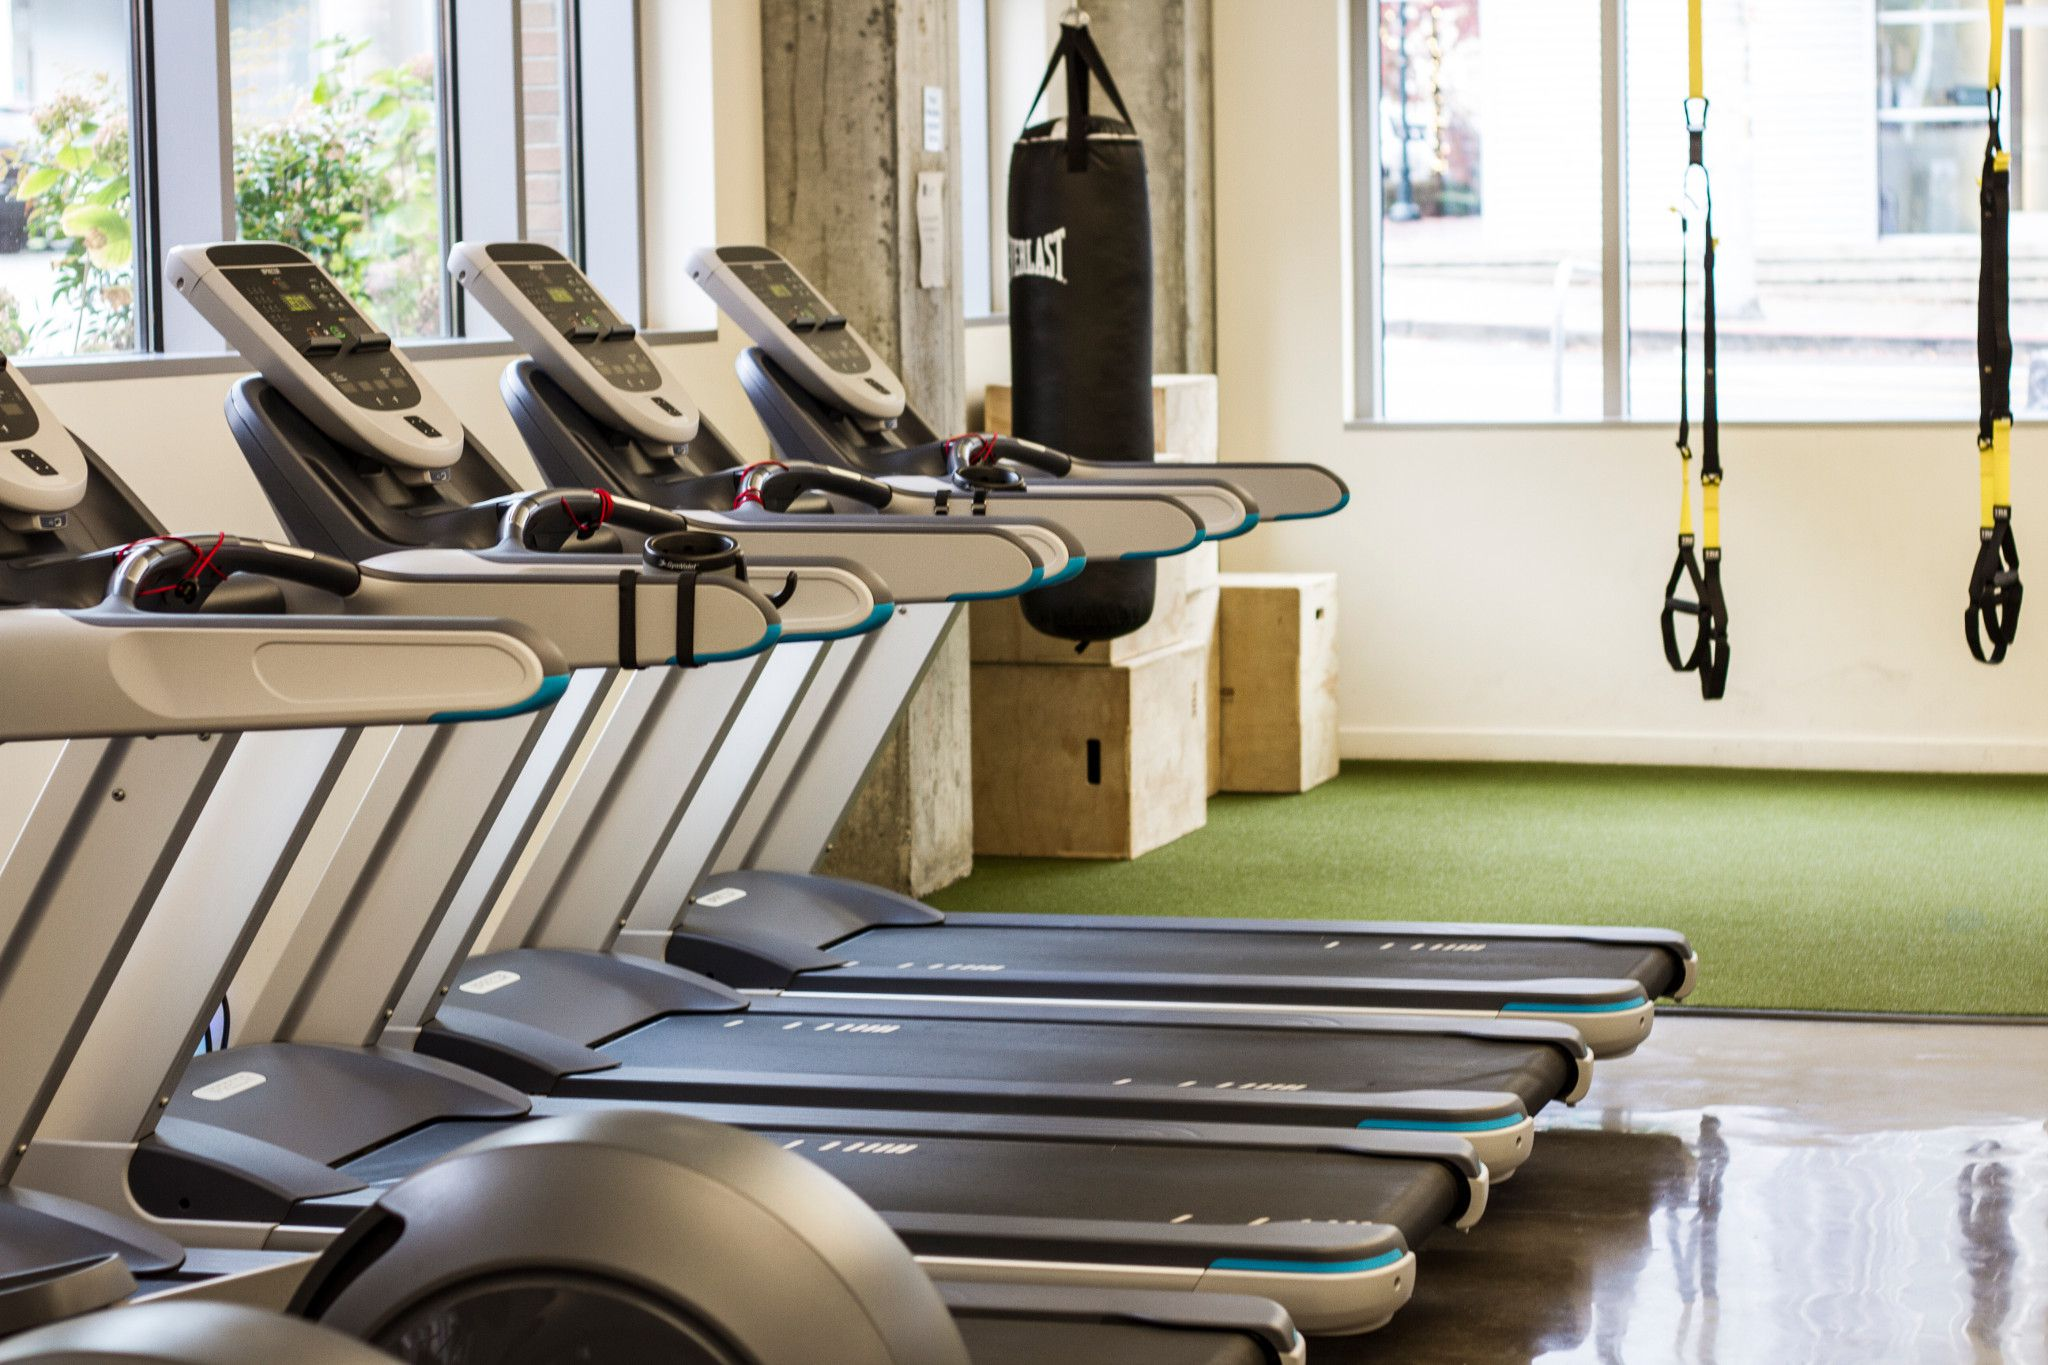 Flow Fitness Seattle - Flow Value Proposition - Gym, Health Club - South Lake Union, Washington